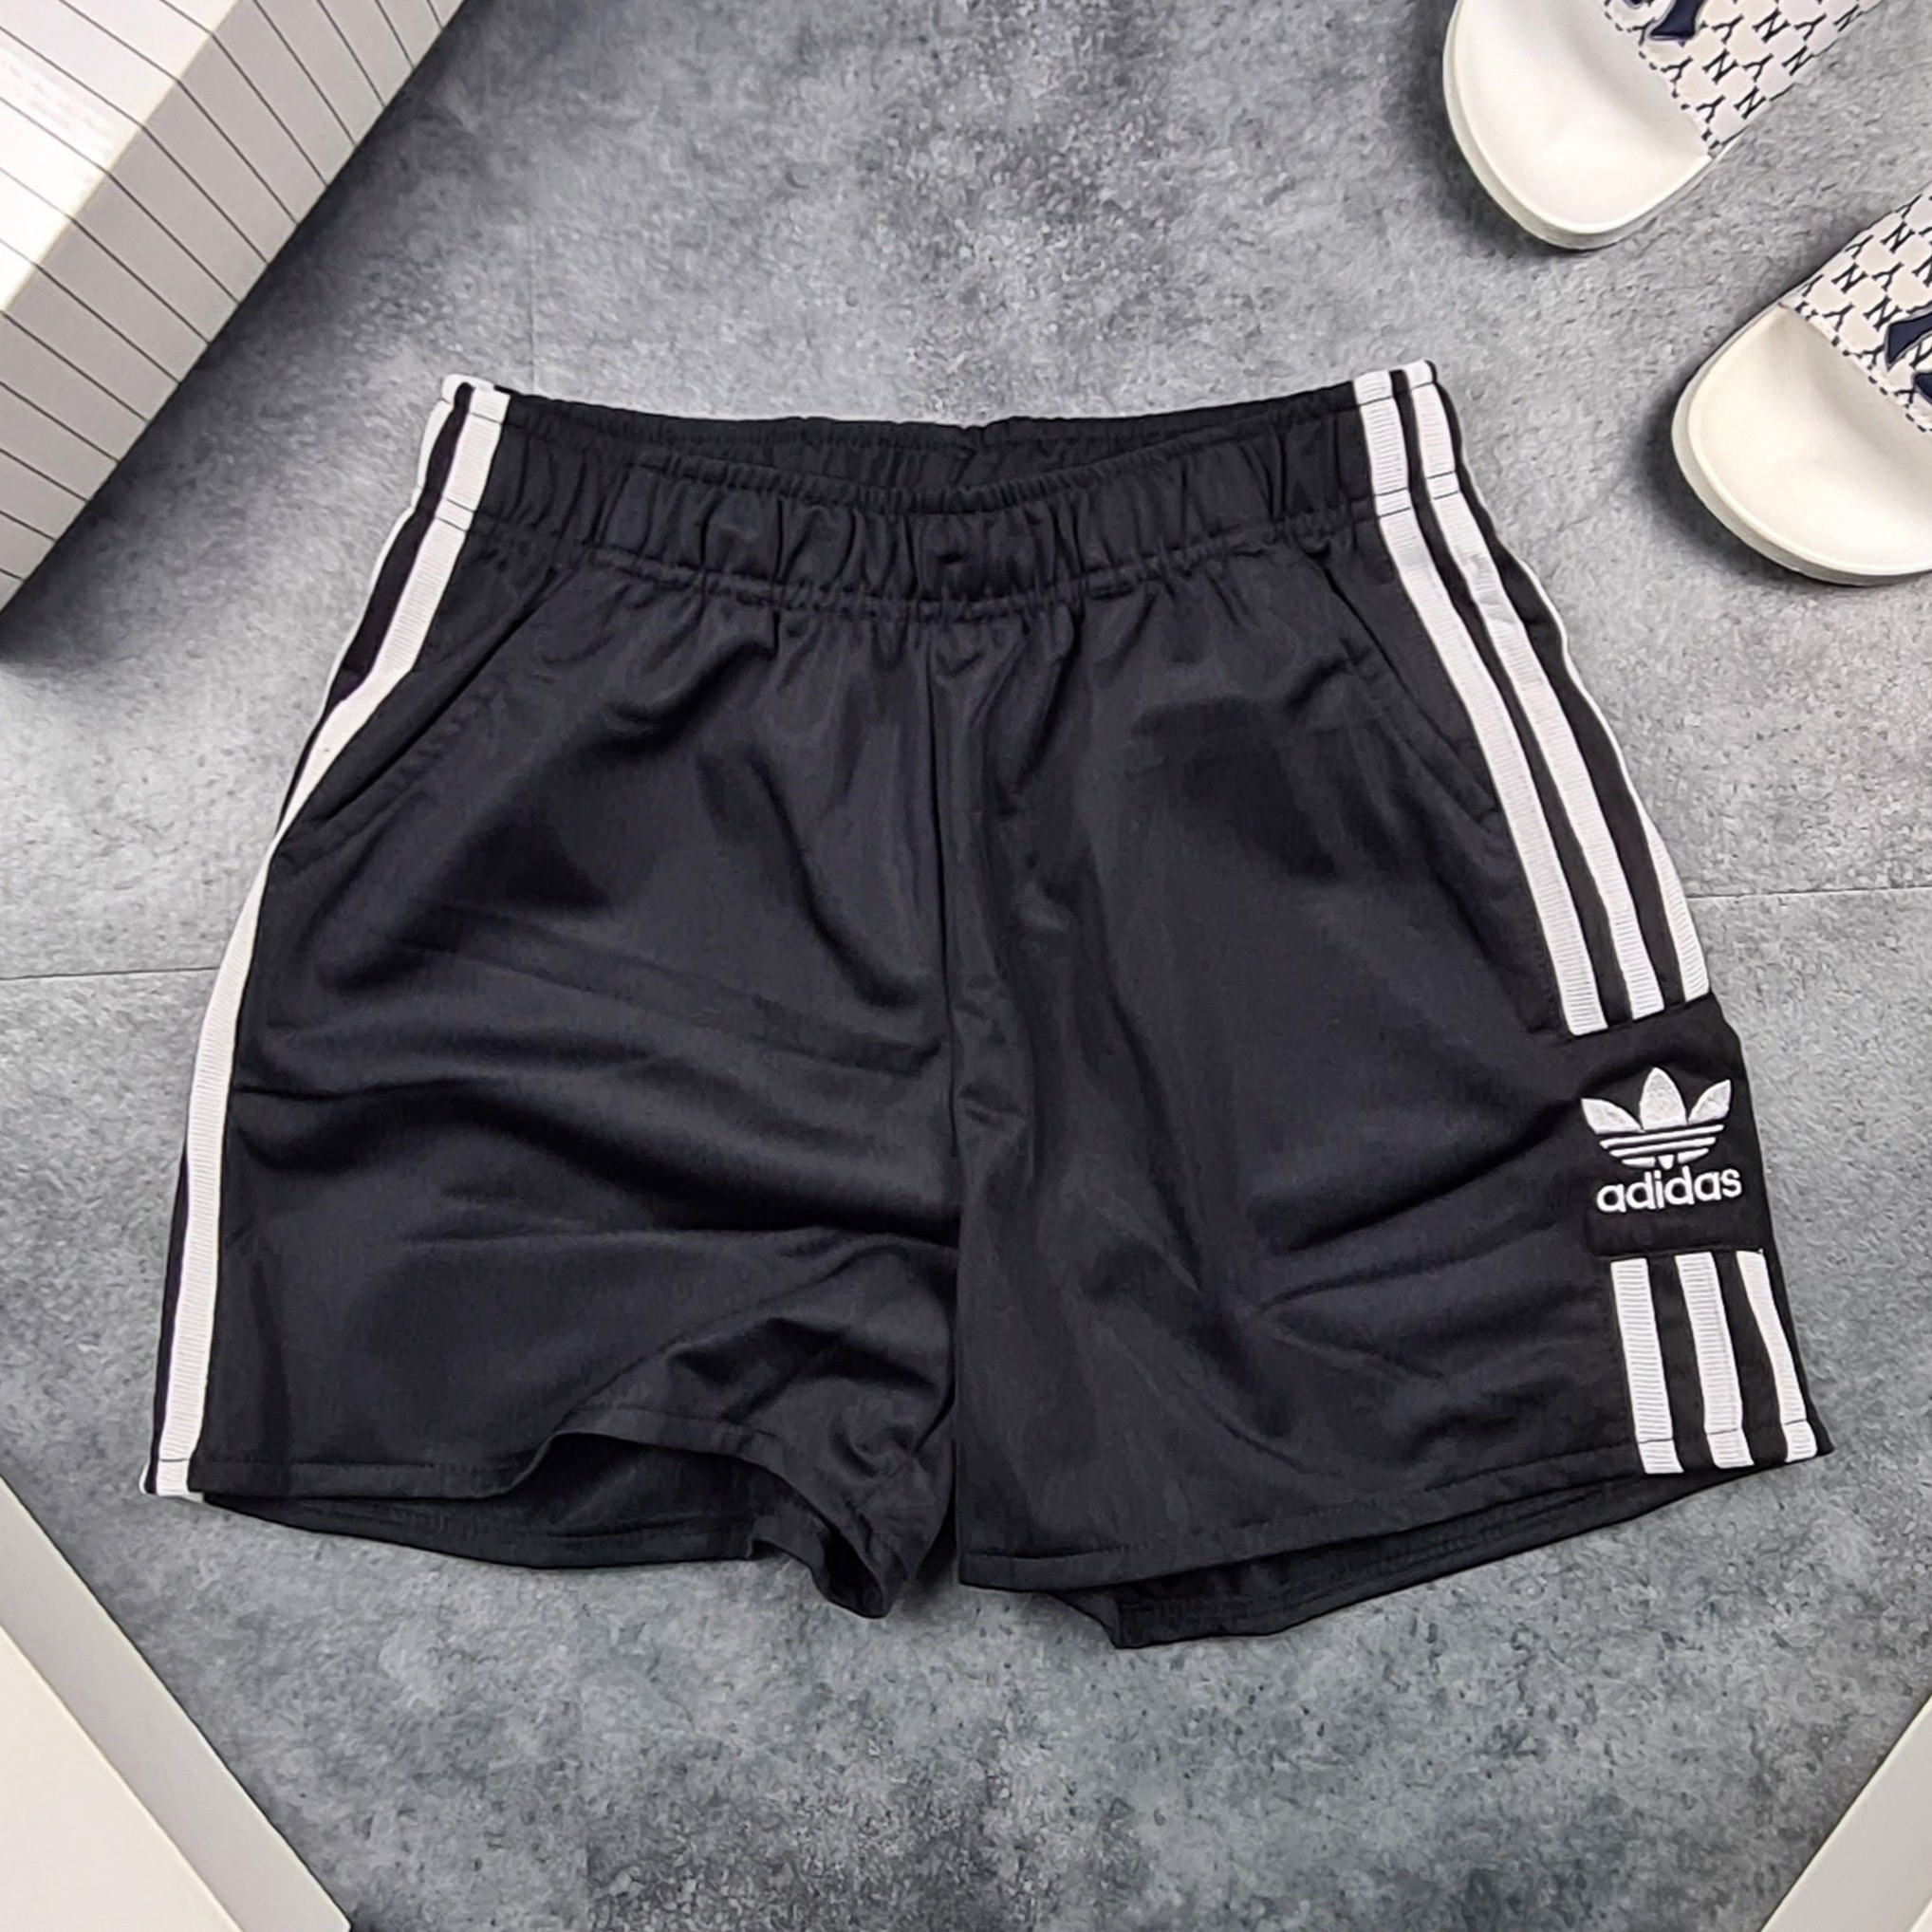 Short Das 3stripes